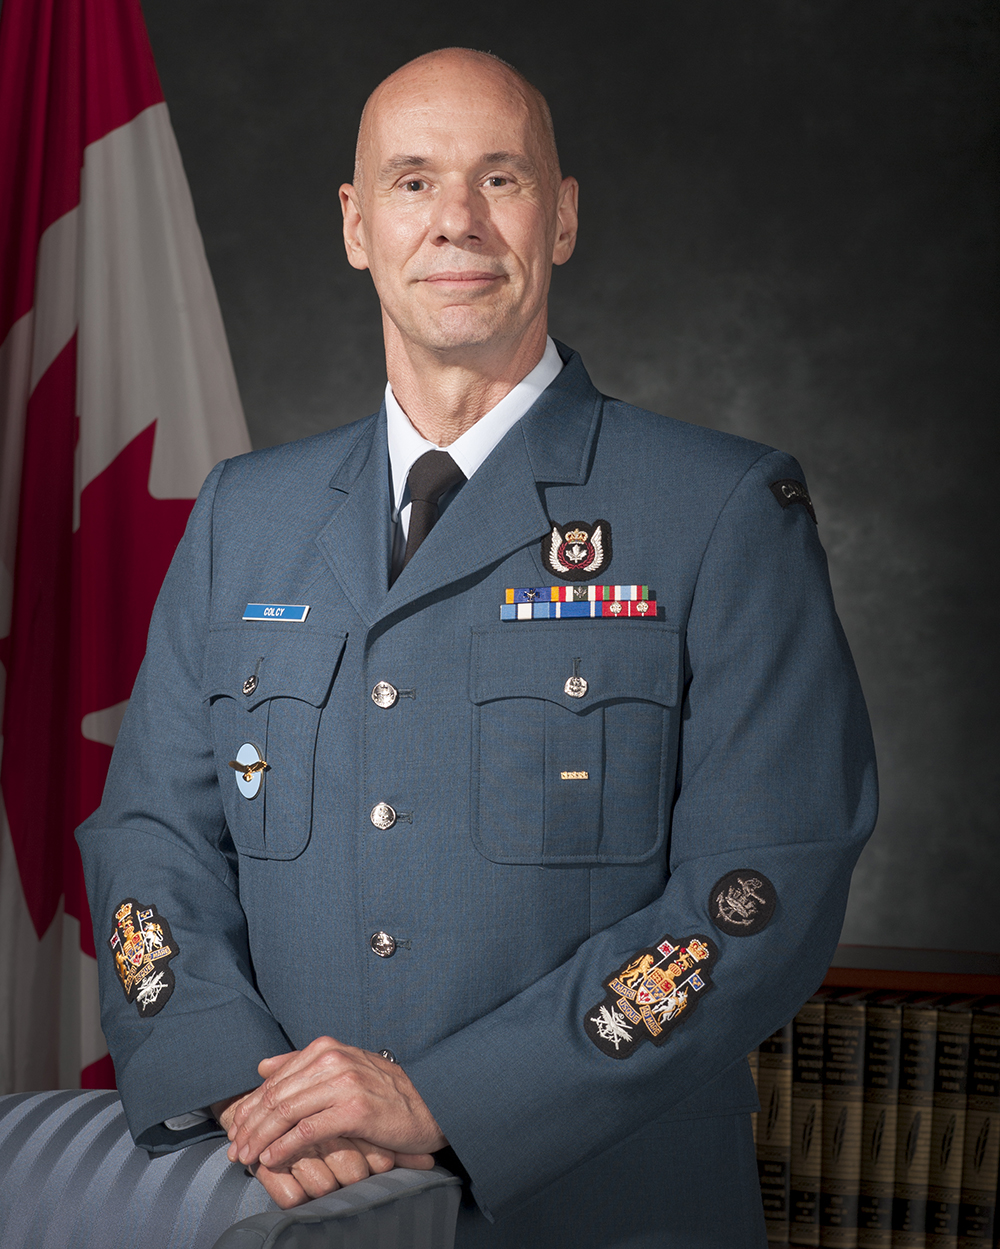 Chief Warrant Officer Kevin D Colcy